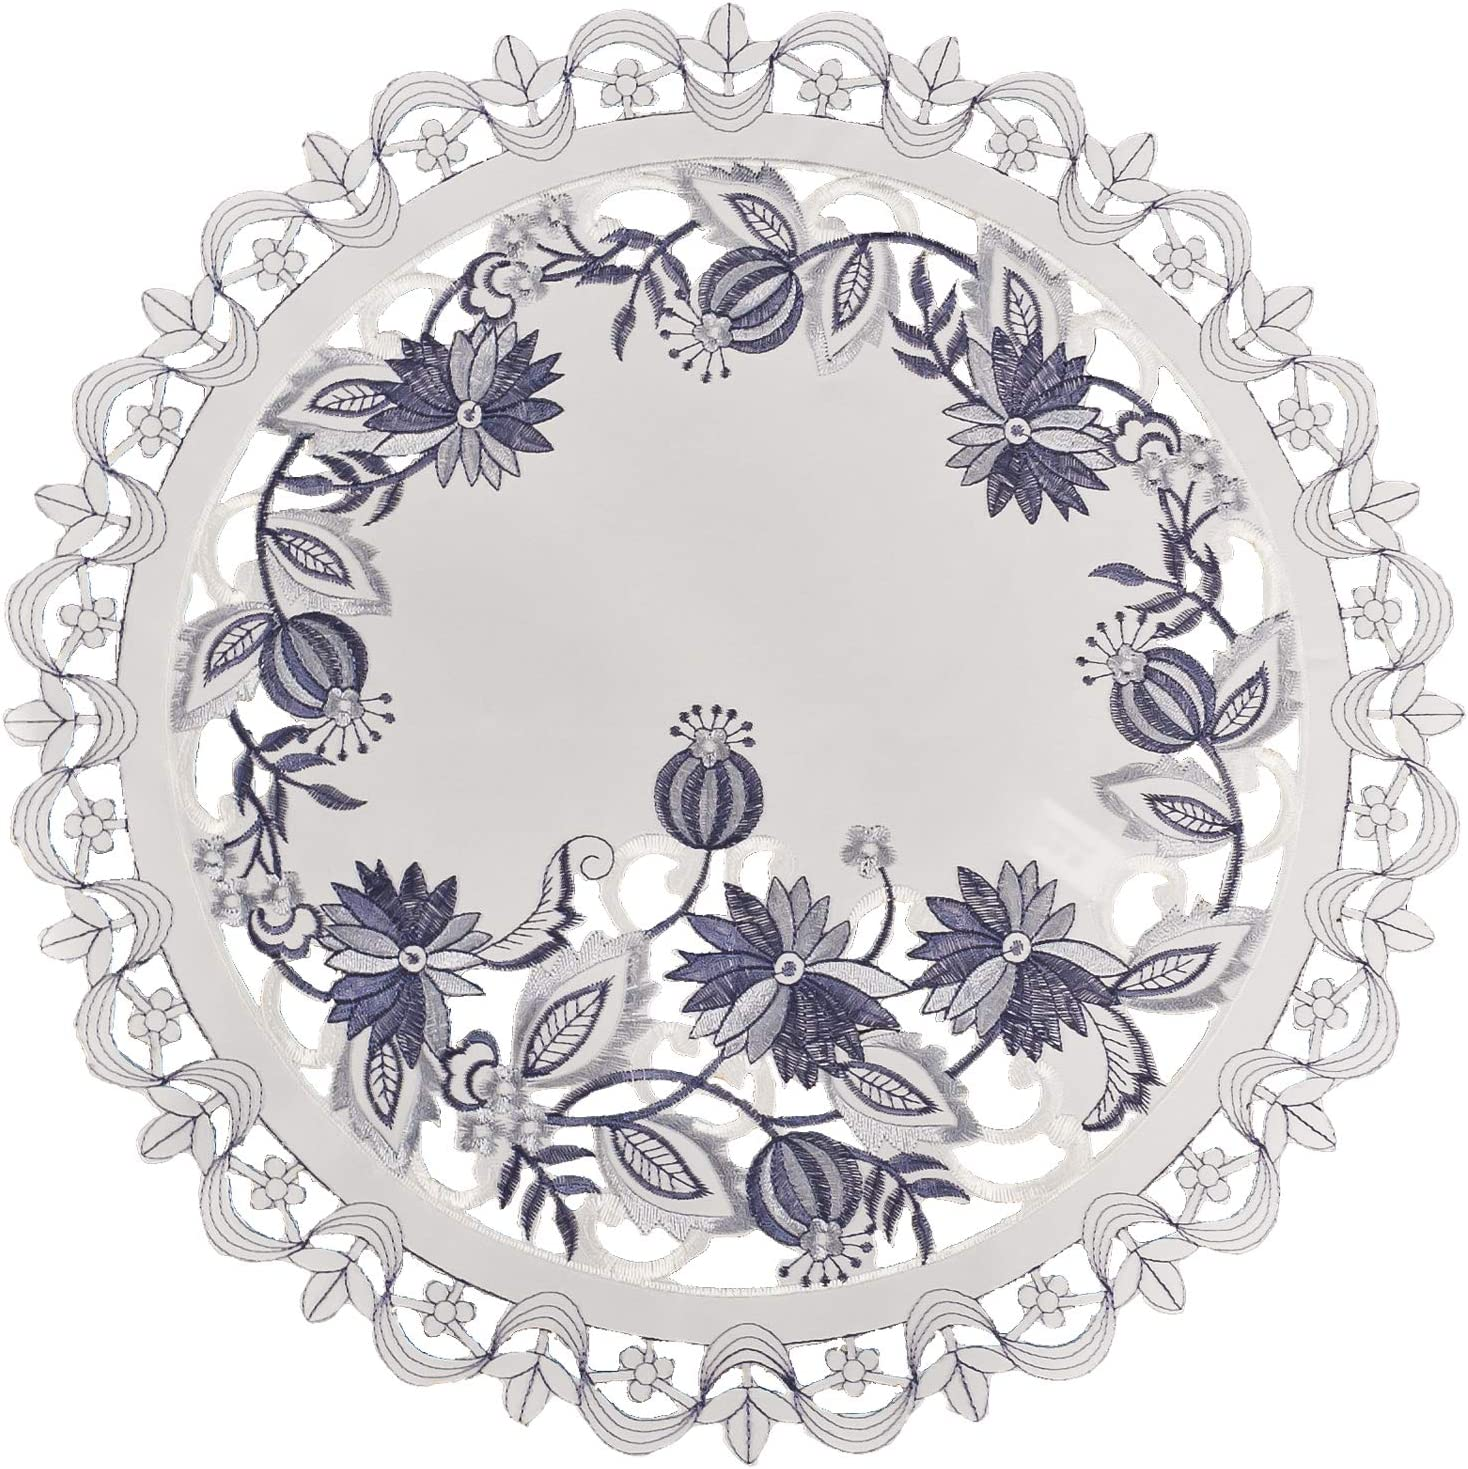 Linens, Art and Things Embroidered Delft Blue Onion Flower Place Mat Doily 16 Inch Round